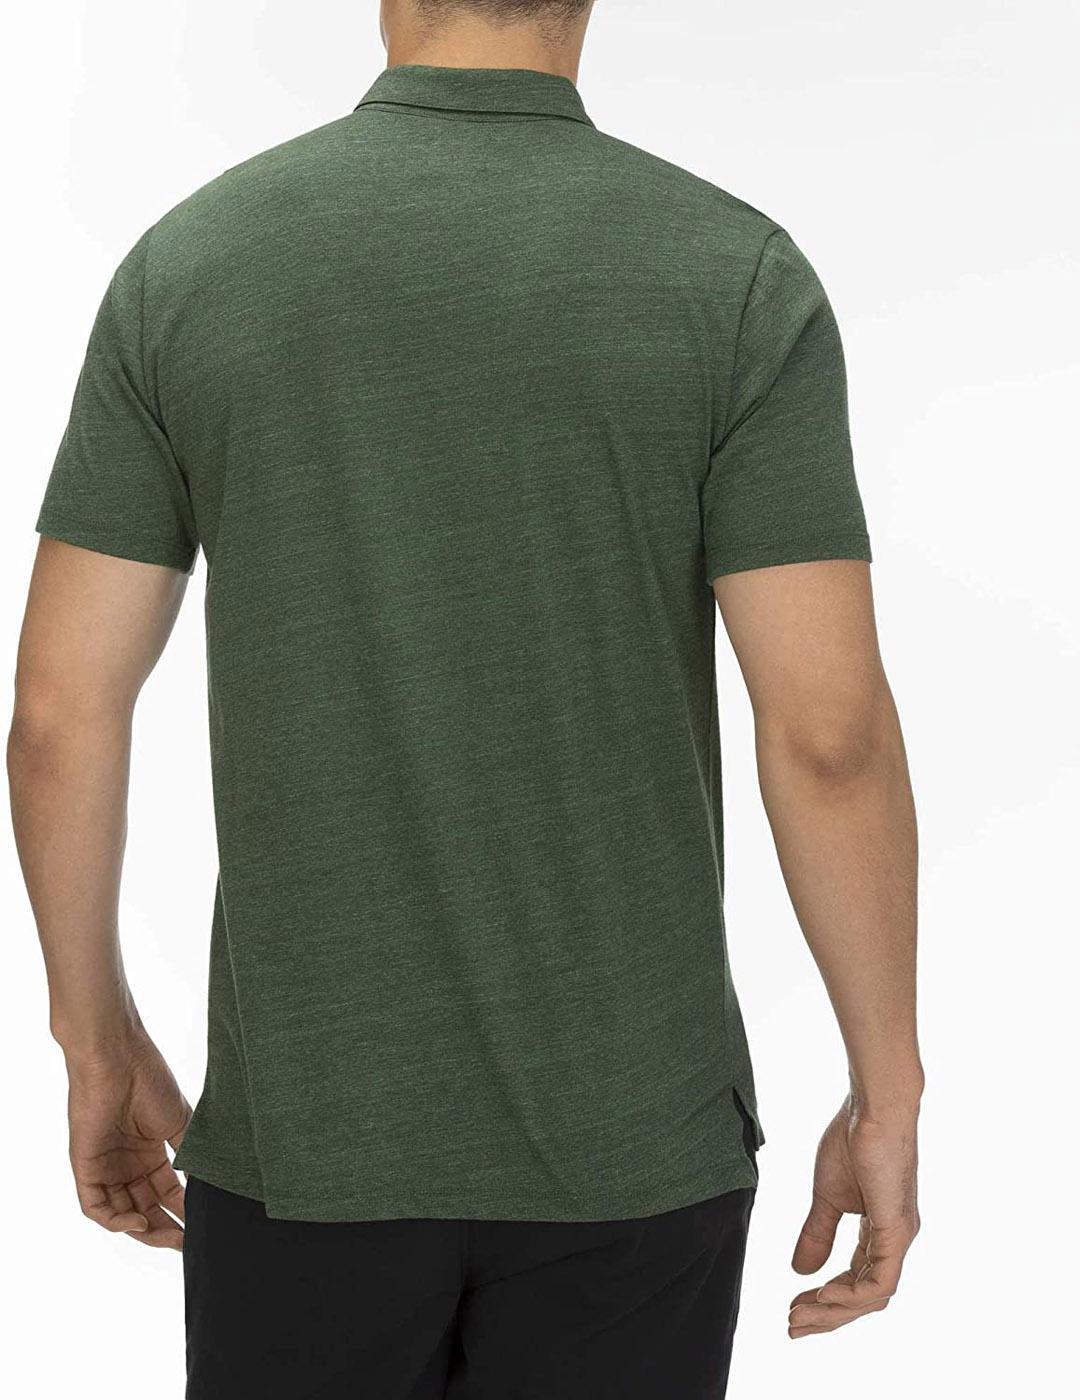 Polo DRI-FIT CORONADO SS - DARK FOREST